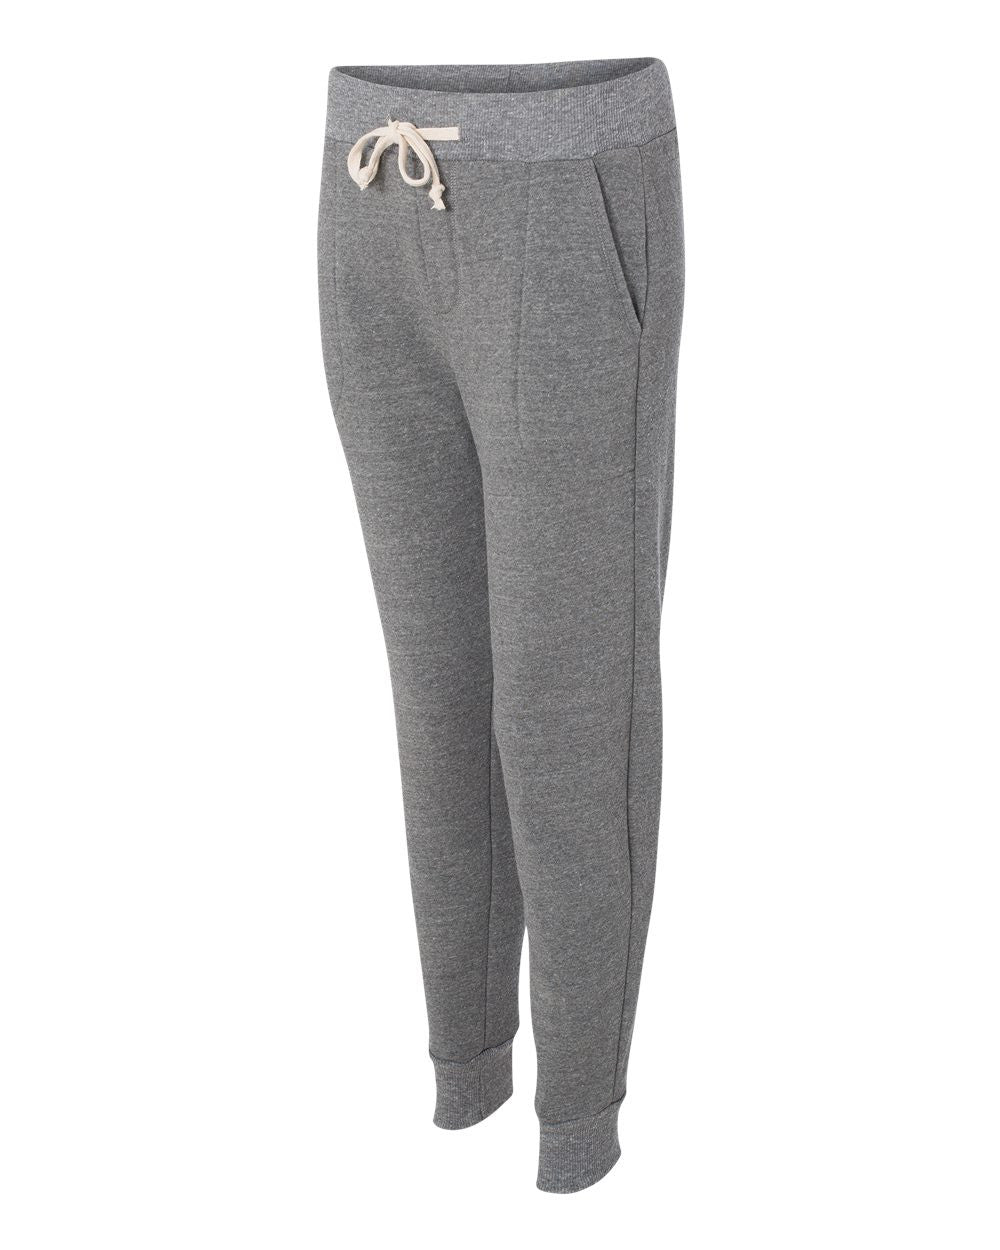 Womens Pocket Sweatpants by Alternative